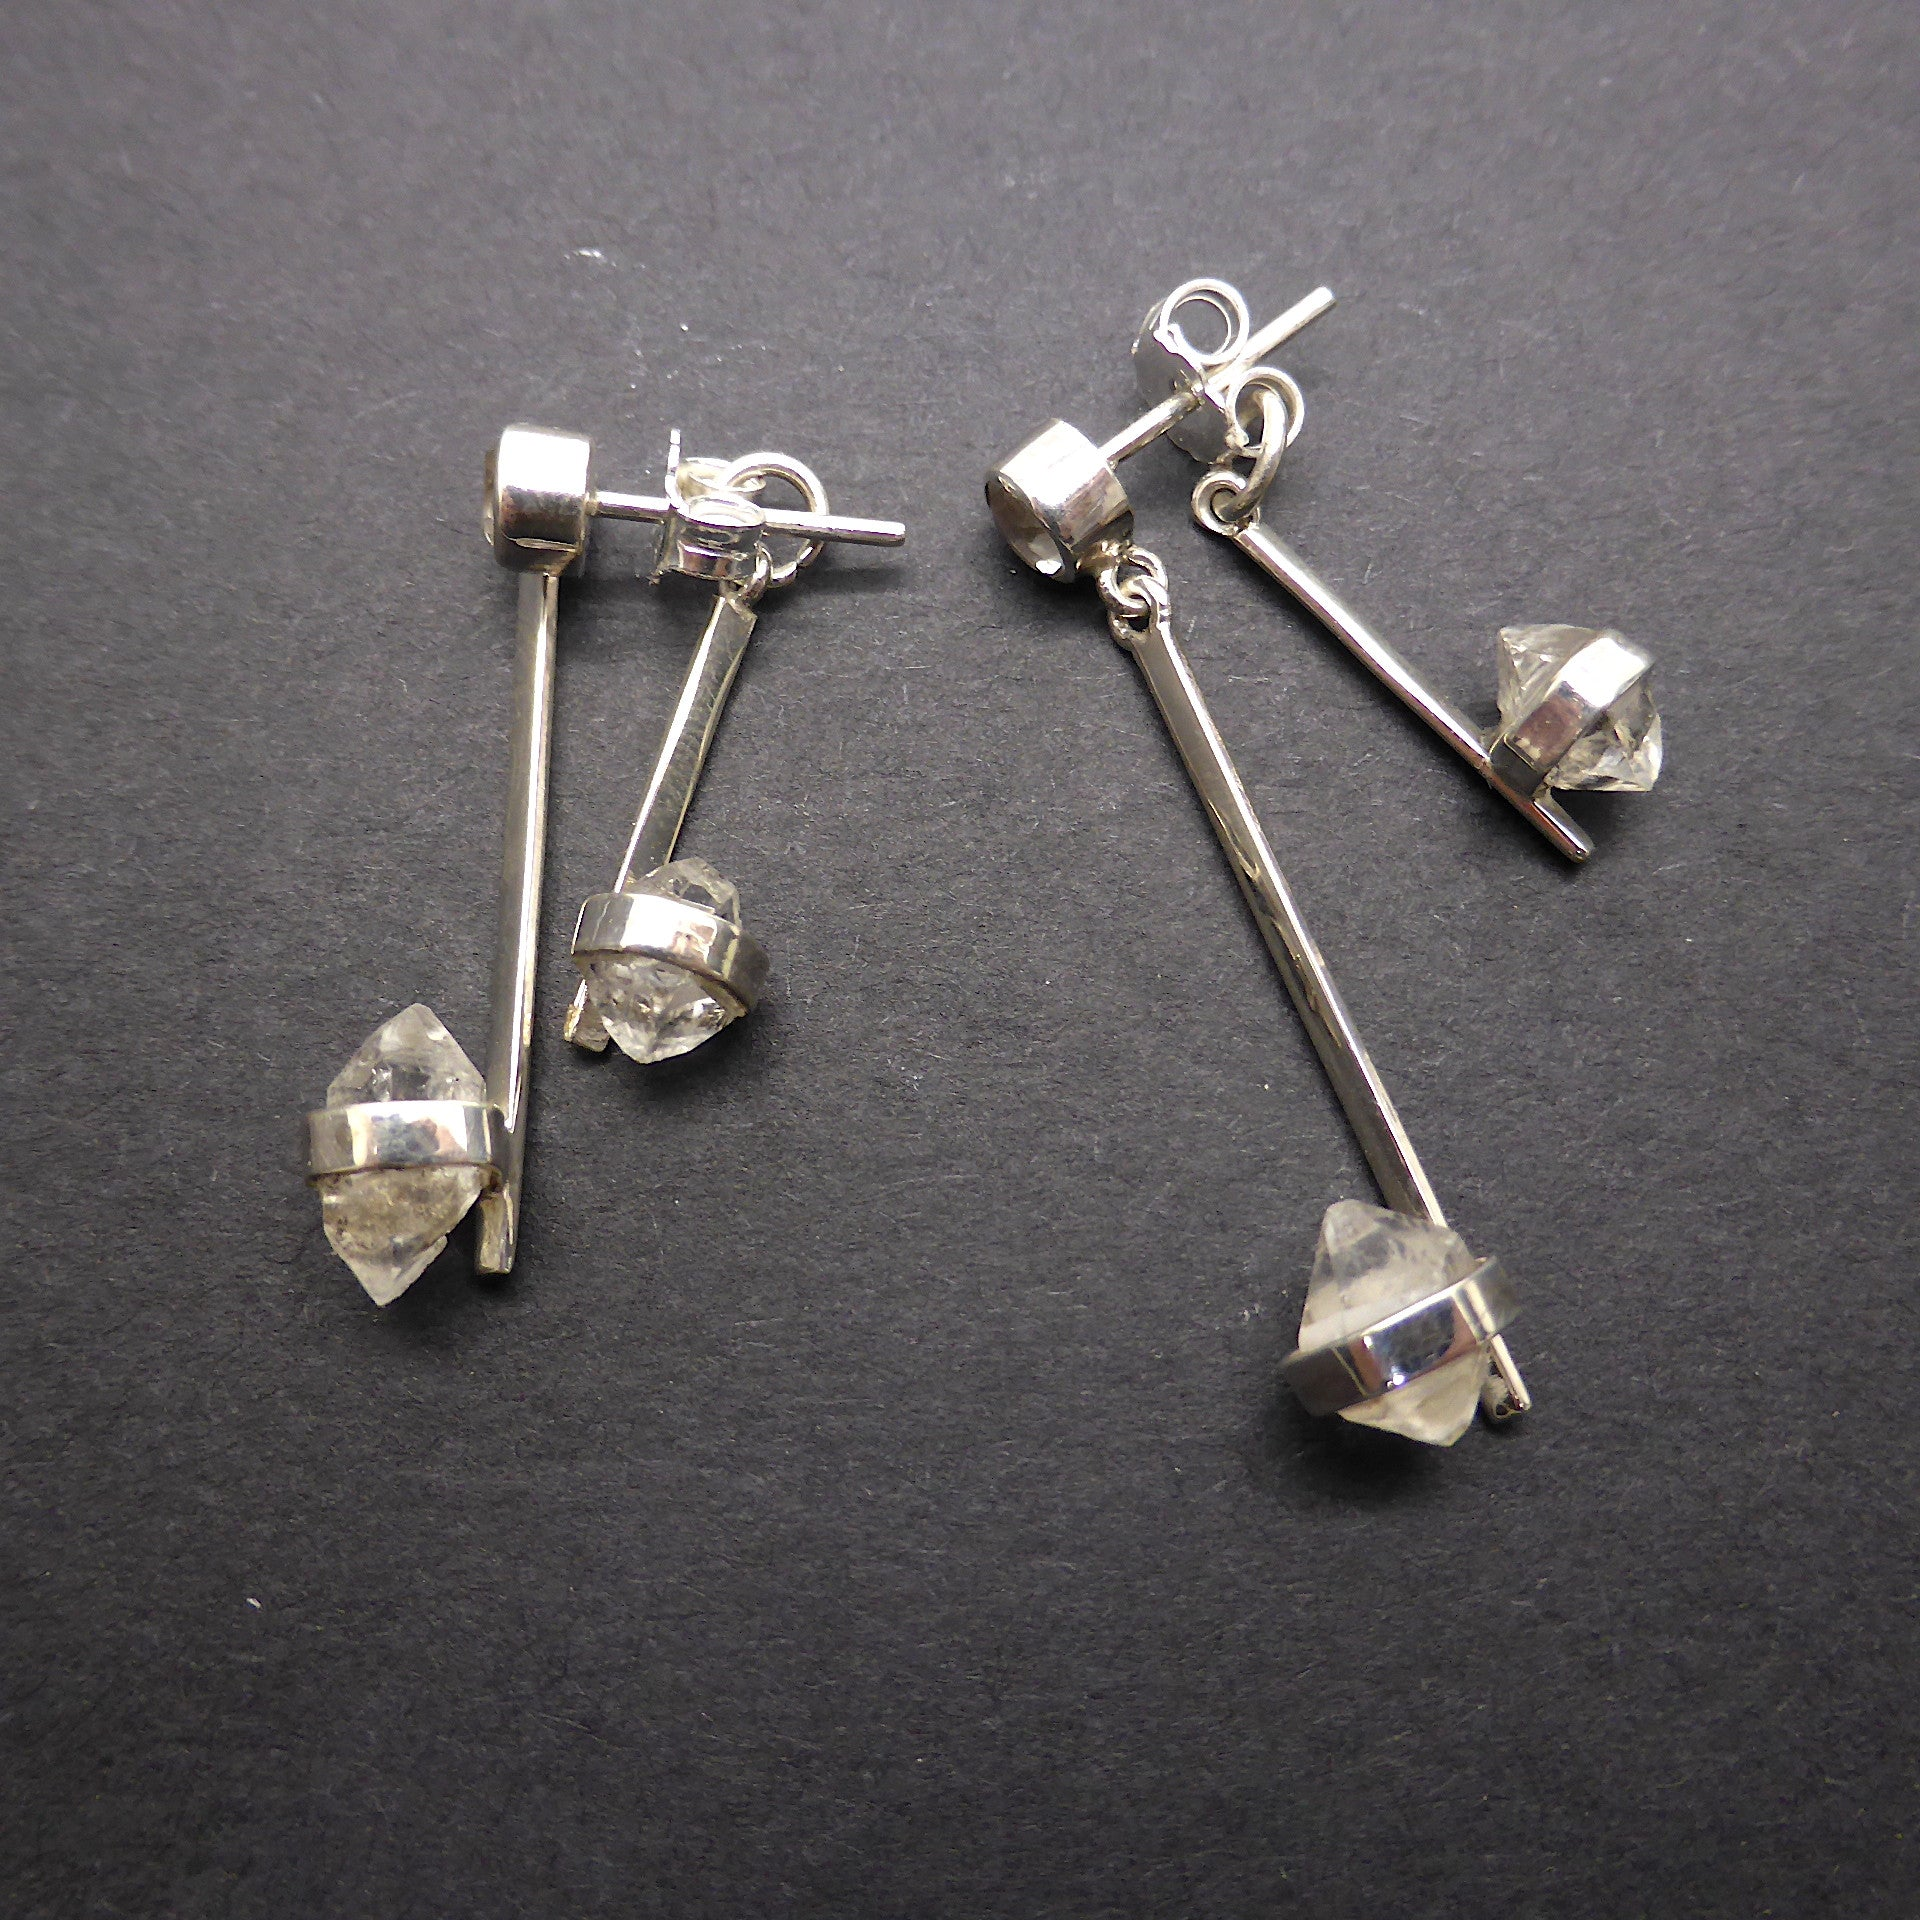 Stud Earrings | 925 Silver | Double Herkimer Diamonds Swing either side of Ear | Clear Topaz Accent | Crystal Heart Melbourne Australia since 1986